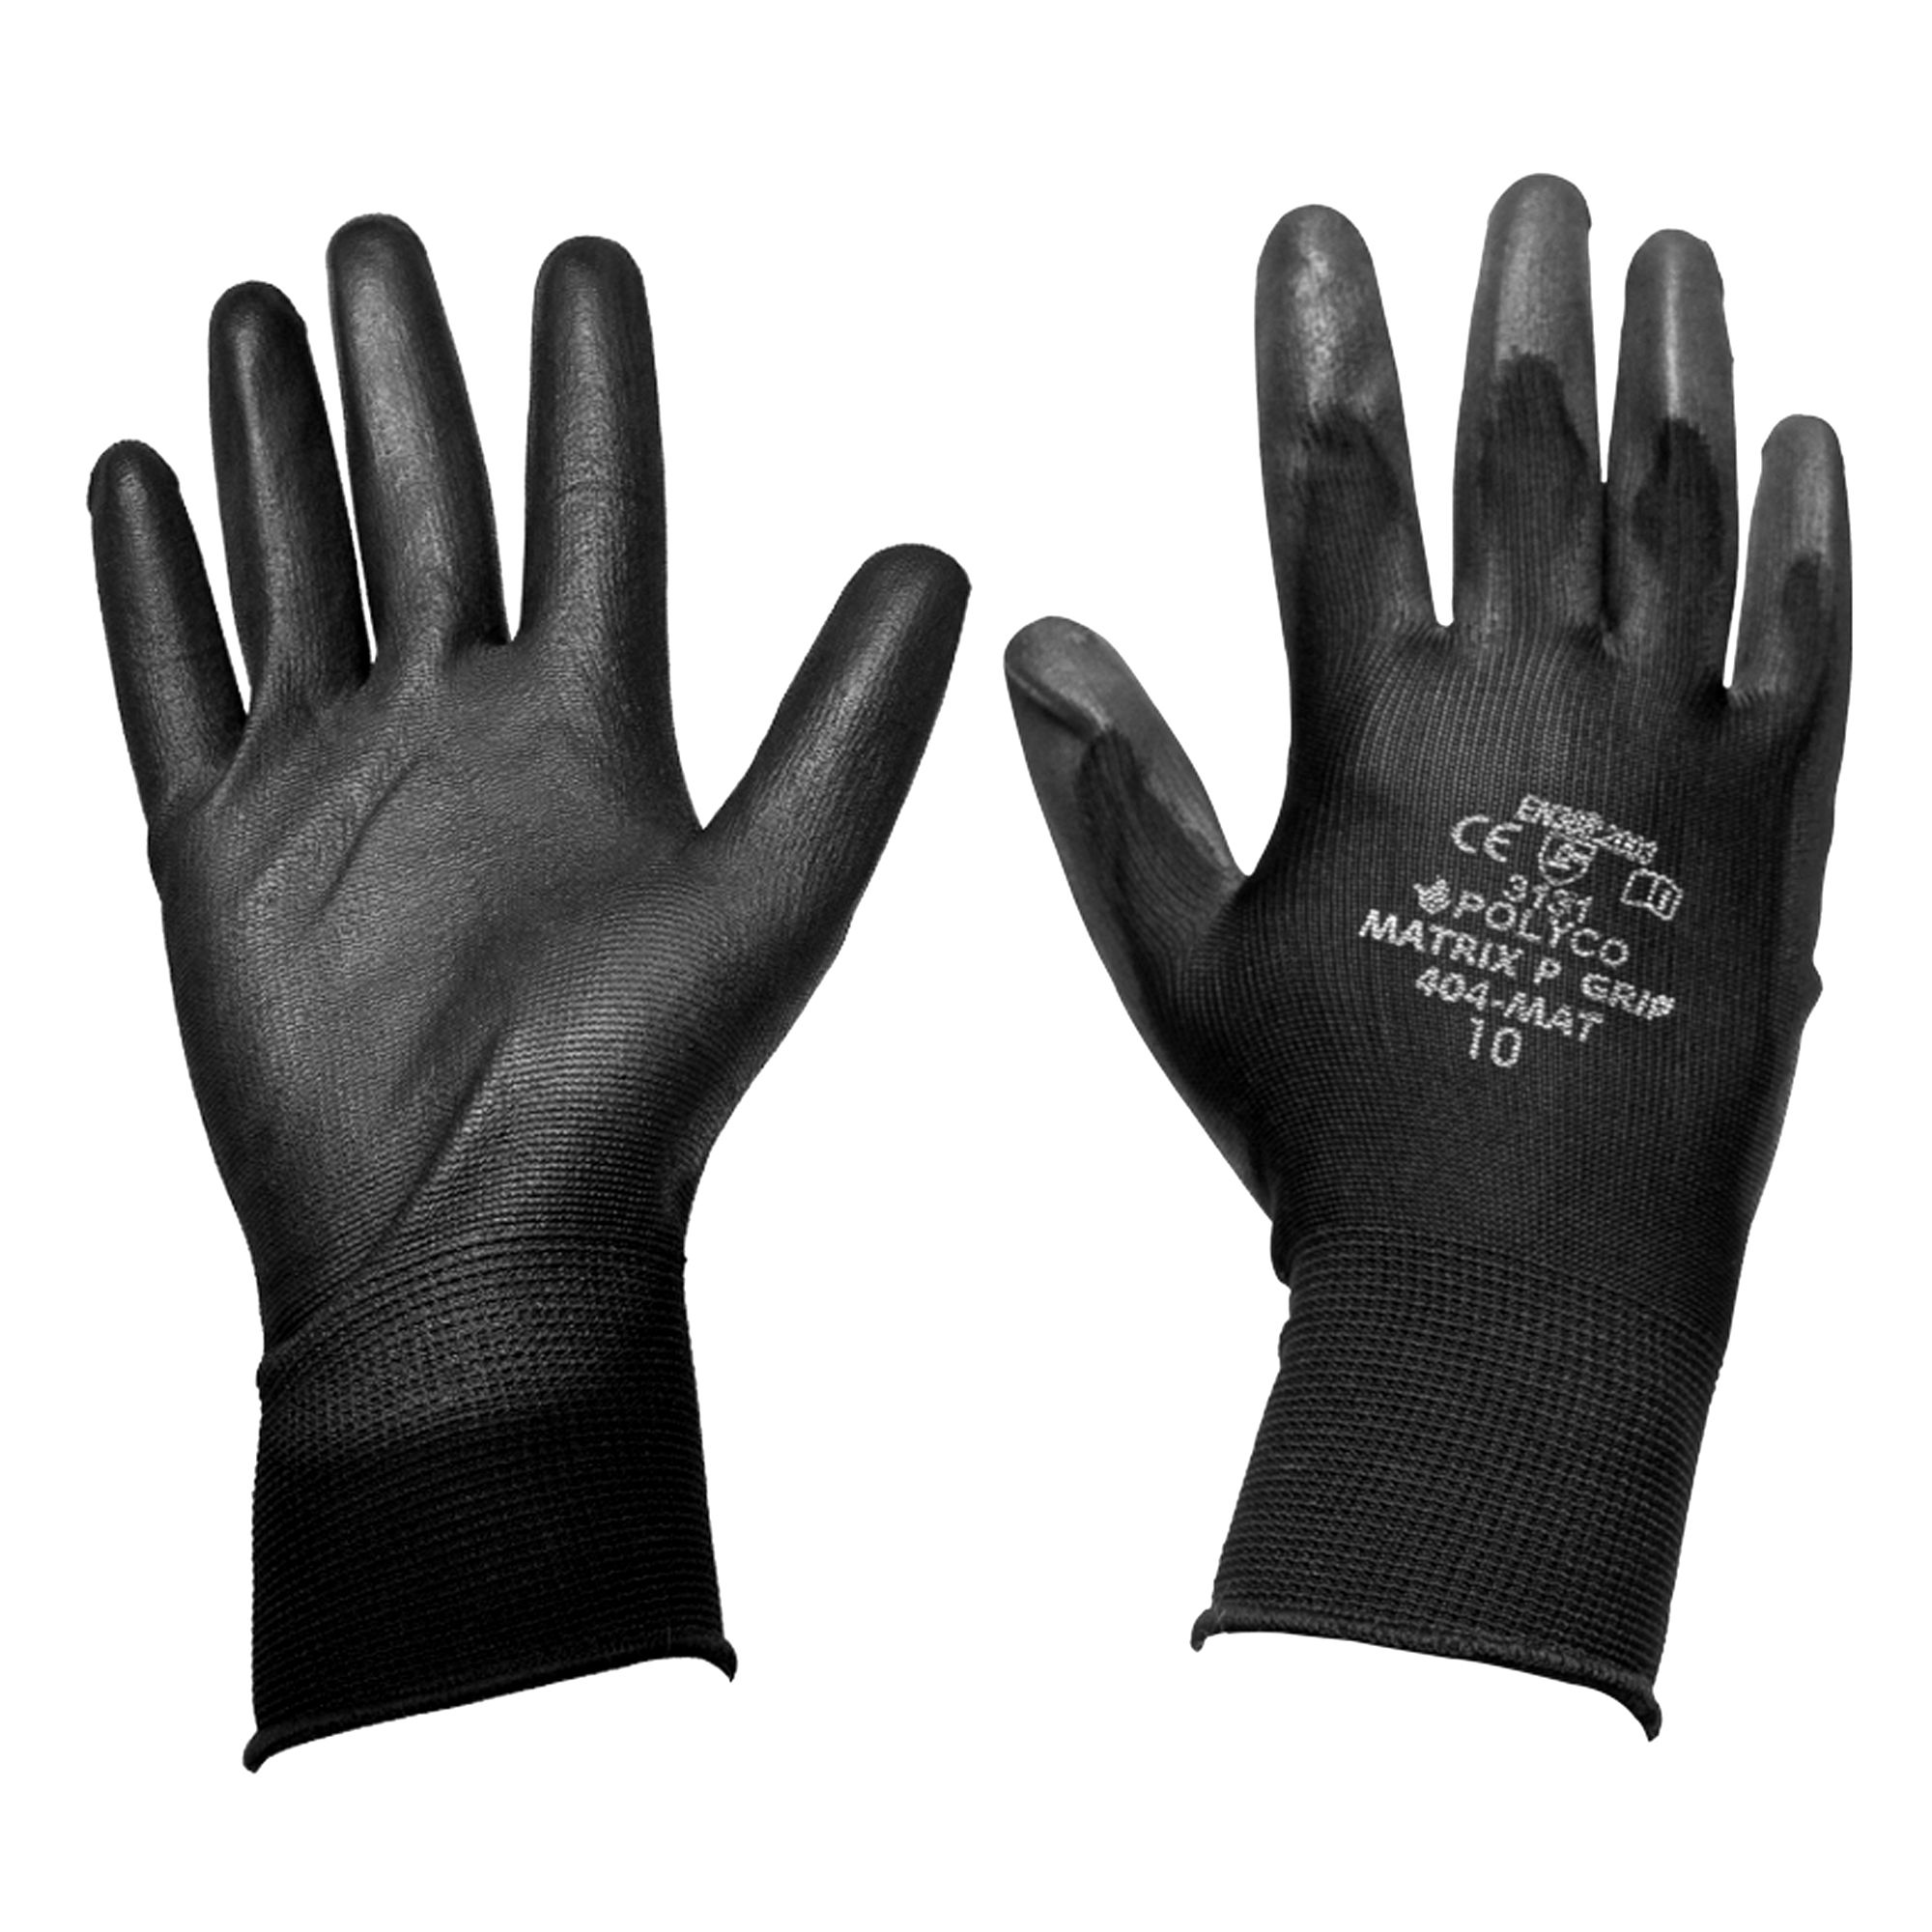 Black gardening gloves - Diall Gripper Gloves One Size Pair